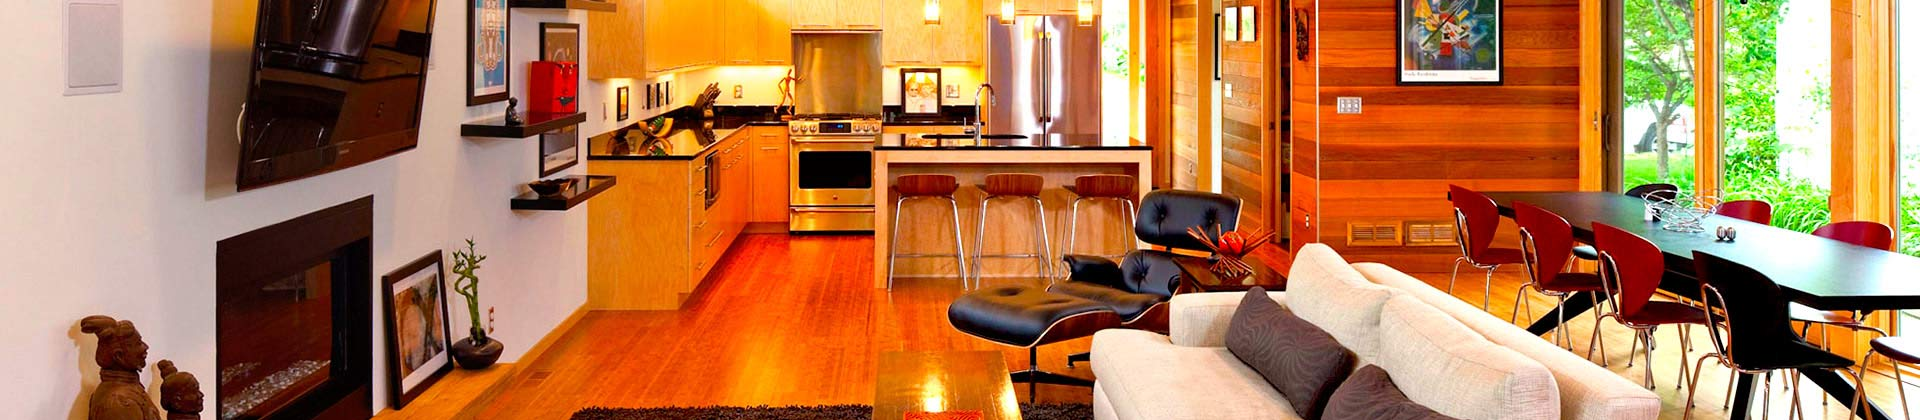 interior remodeling kitchen | Construction Services in San Francisco and Marin County